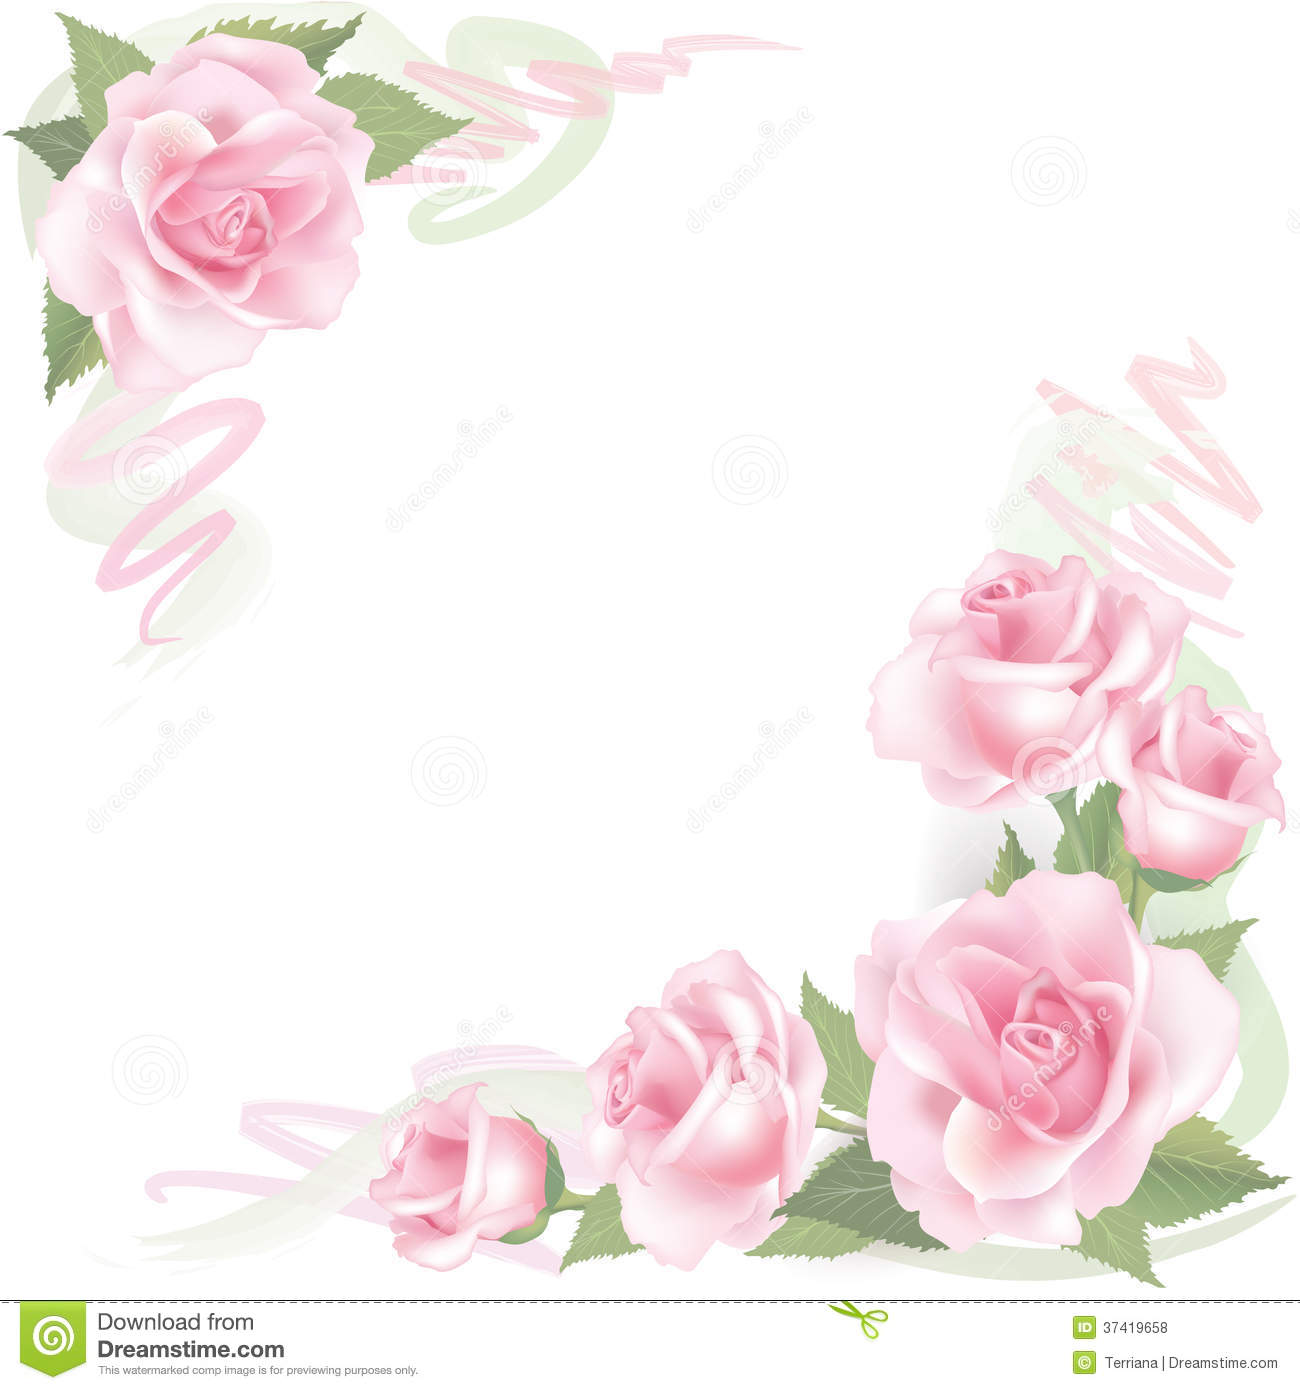 Flower rose frame on white background floral decor for Cadre floral mural